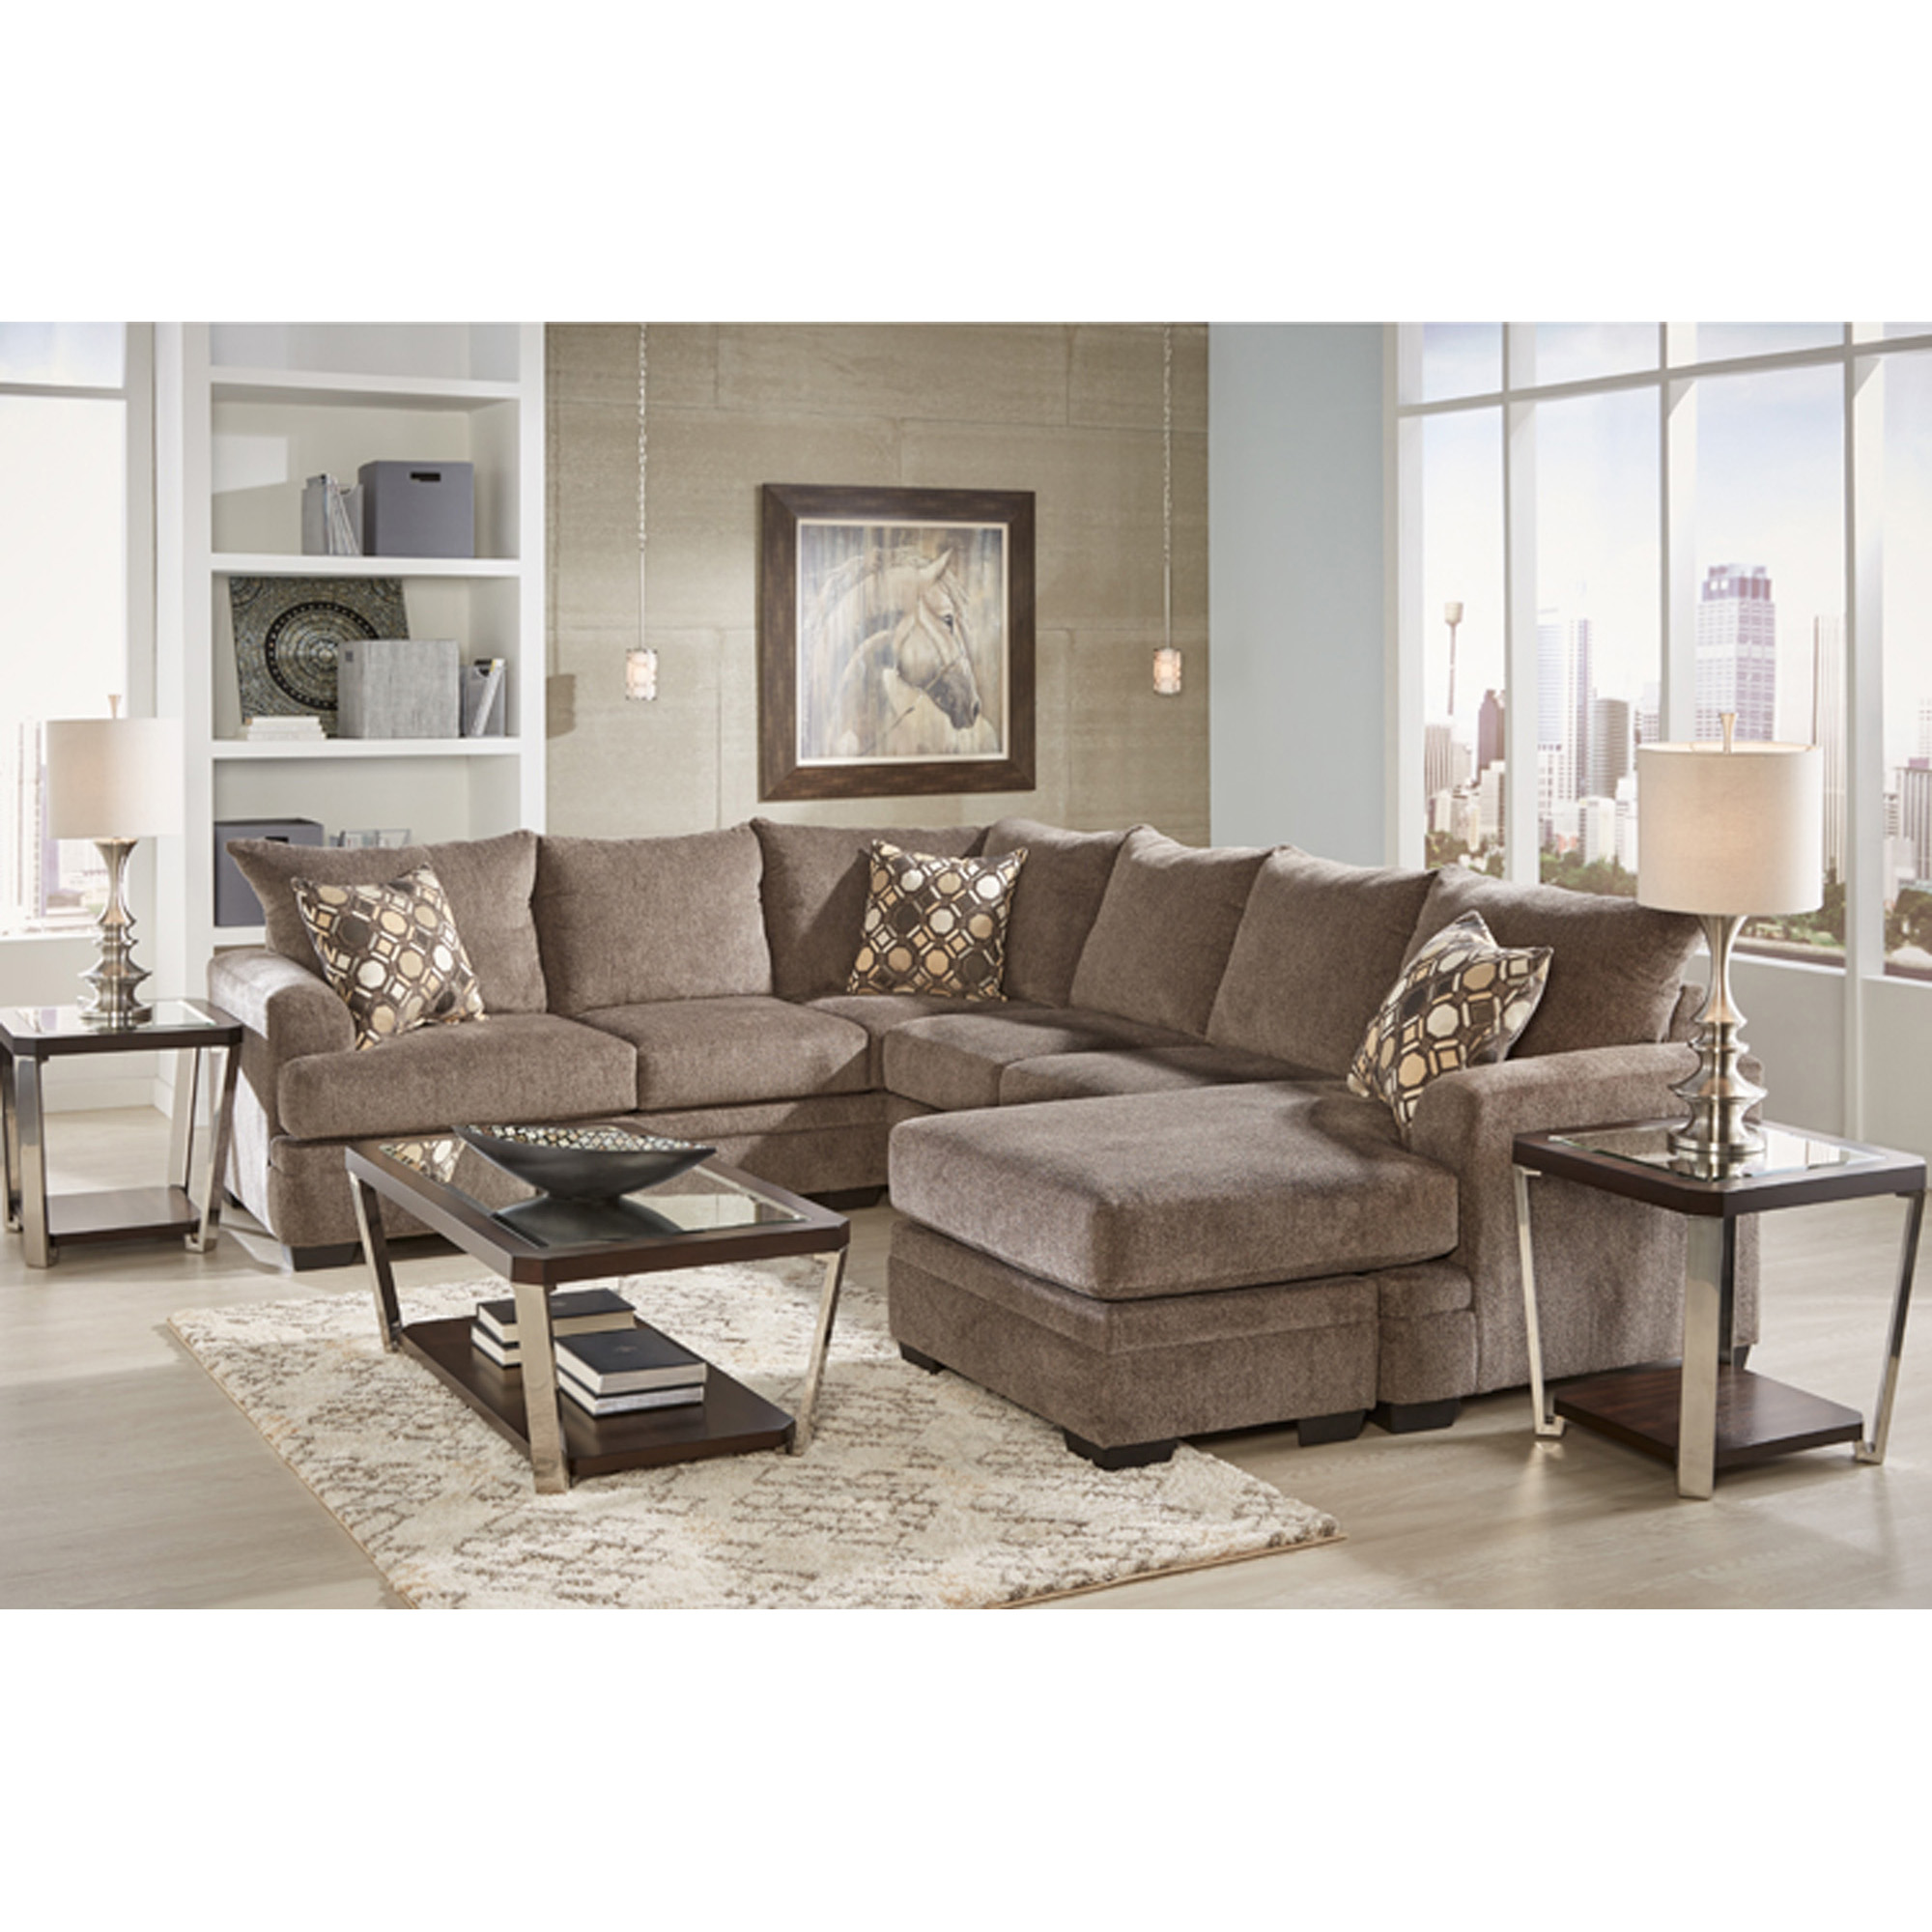 Rent To Own Woodhaven 2 Piece Kimberly Sectional Living Room Collection At Aaron S Today